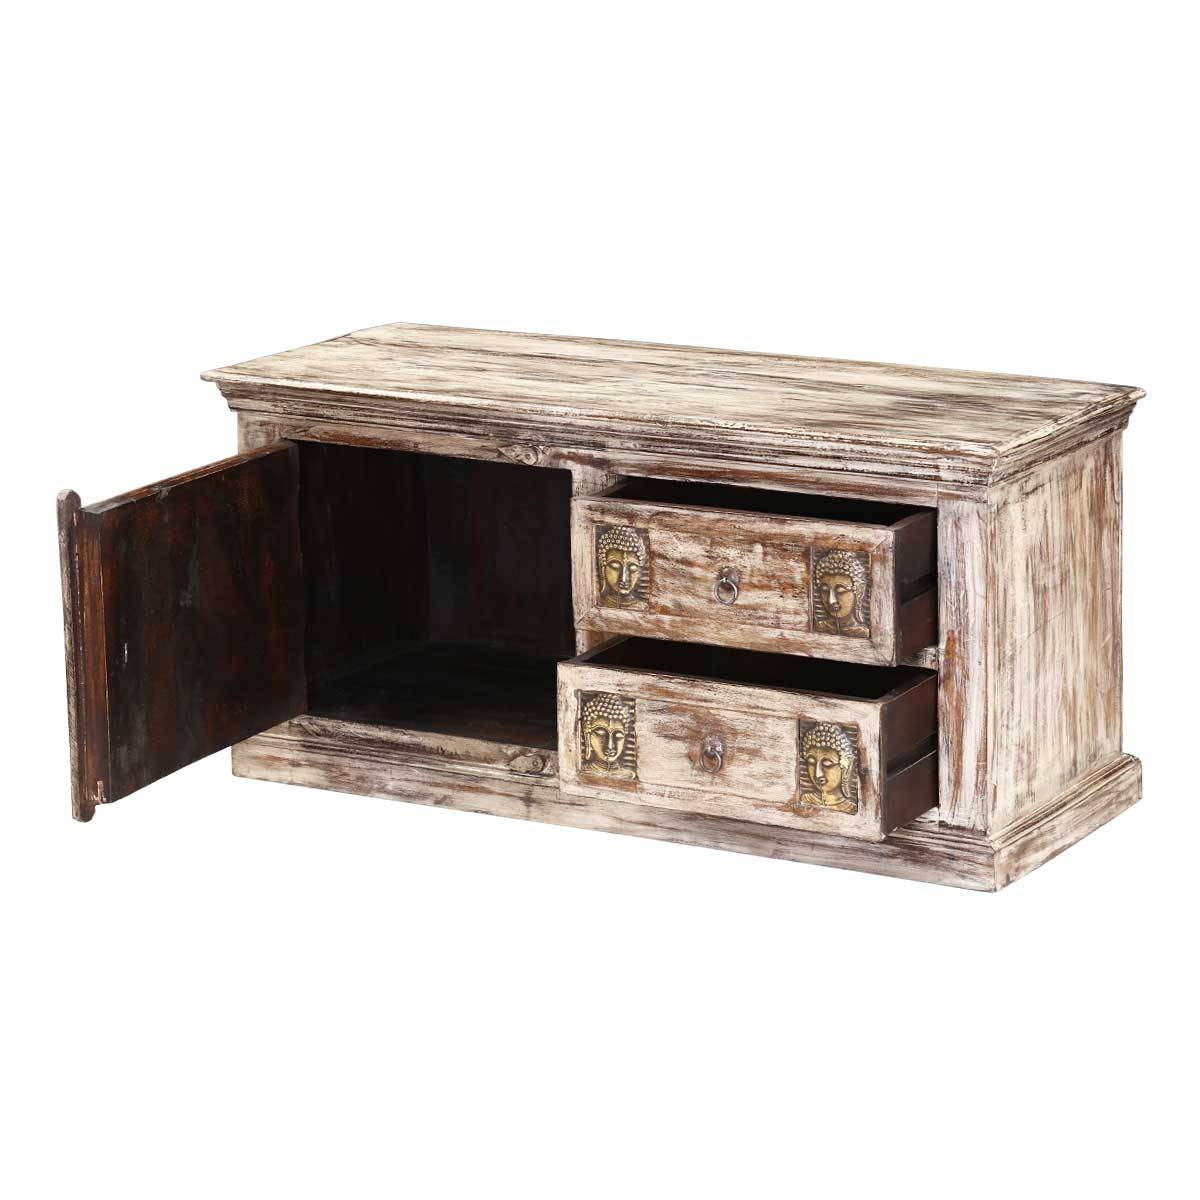 Buddha Mango Wood & Brass Rustic Coffee Table Chest With Regard To Buddha Coffee Tables (View 15 of 30)